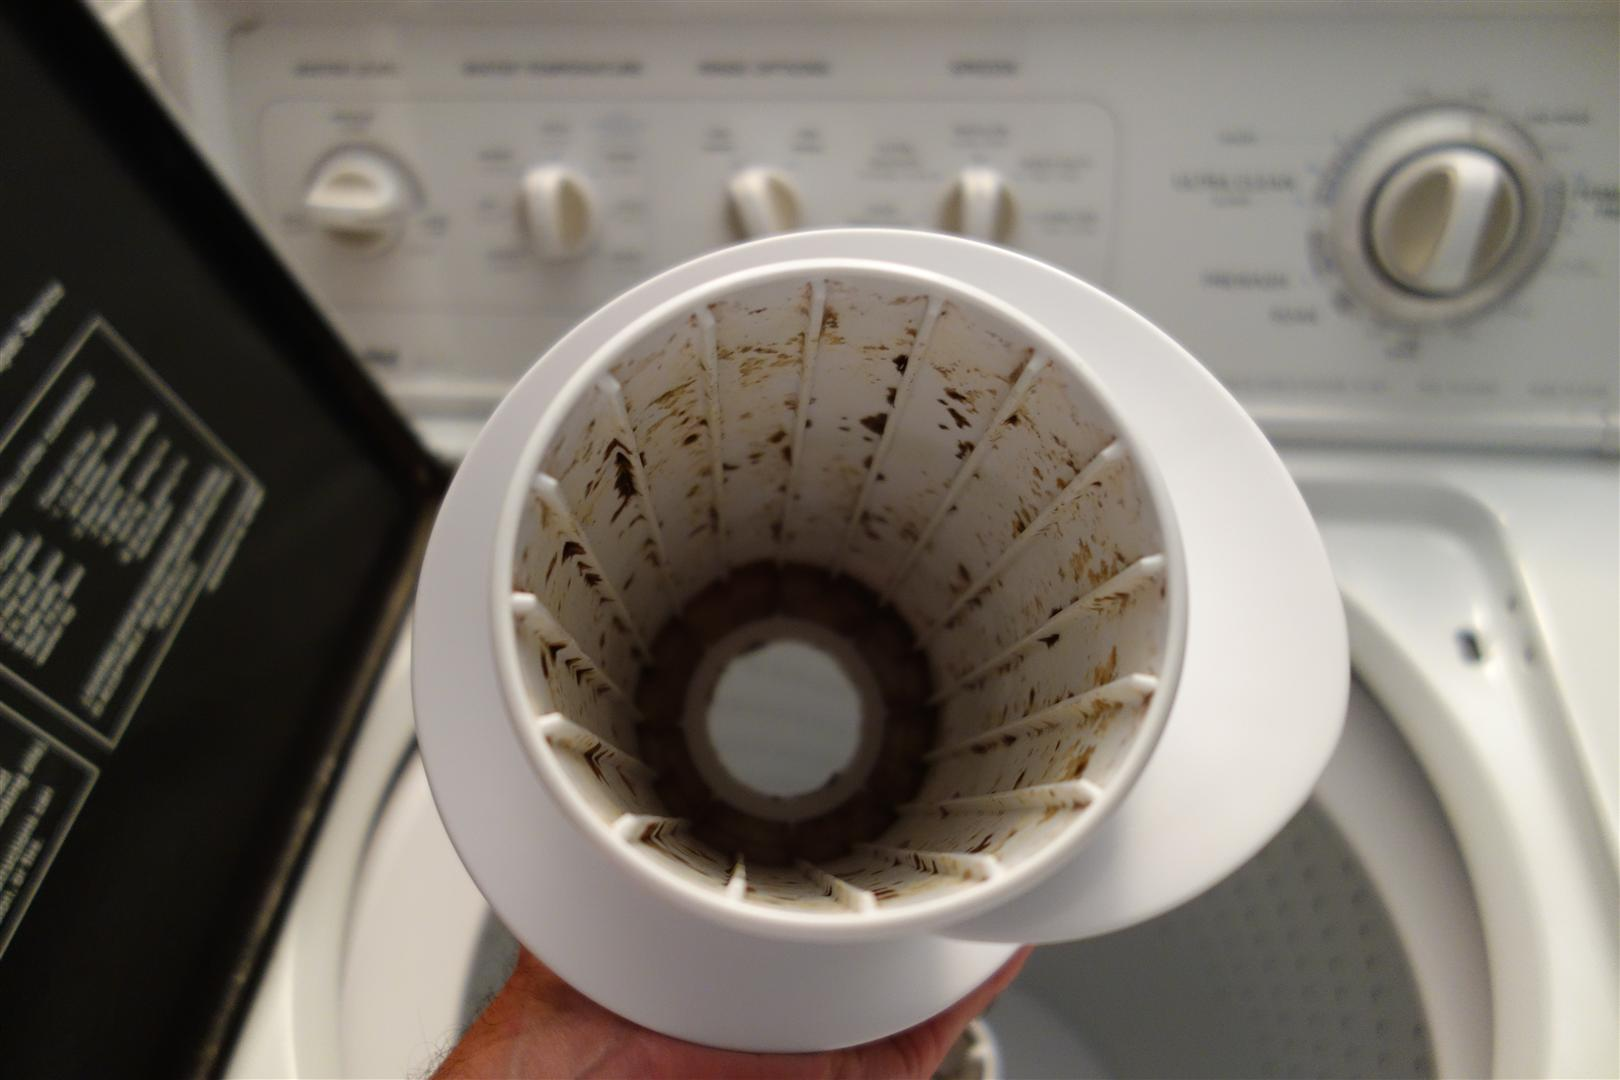 remove the agitator tip if your washer